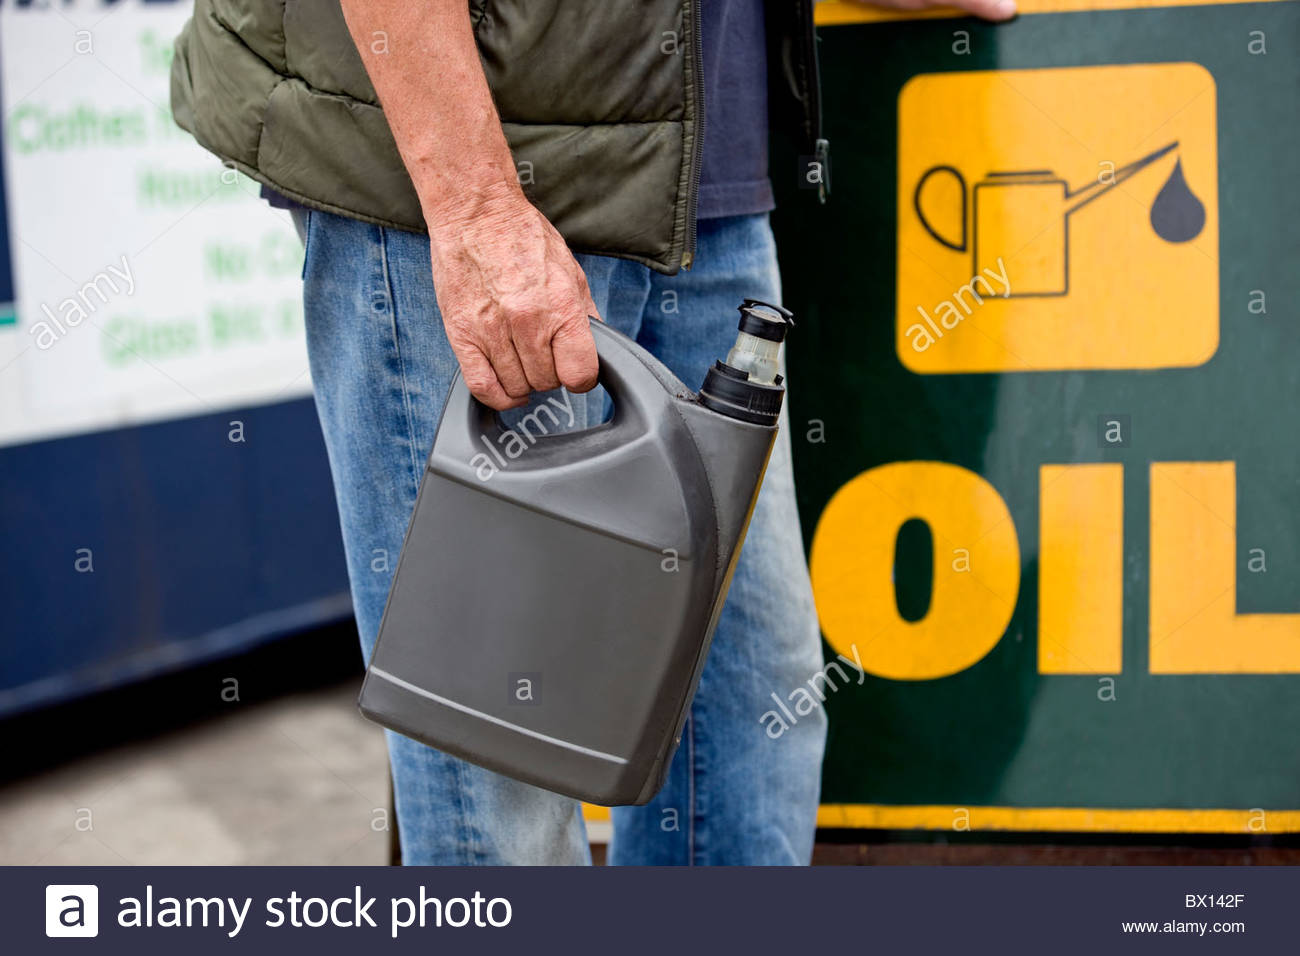 A senior man holding an oil container in a recycling center, close-up - Stock Image